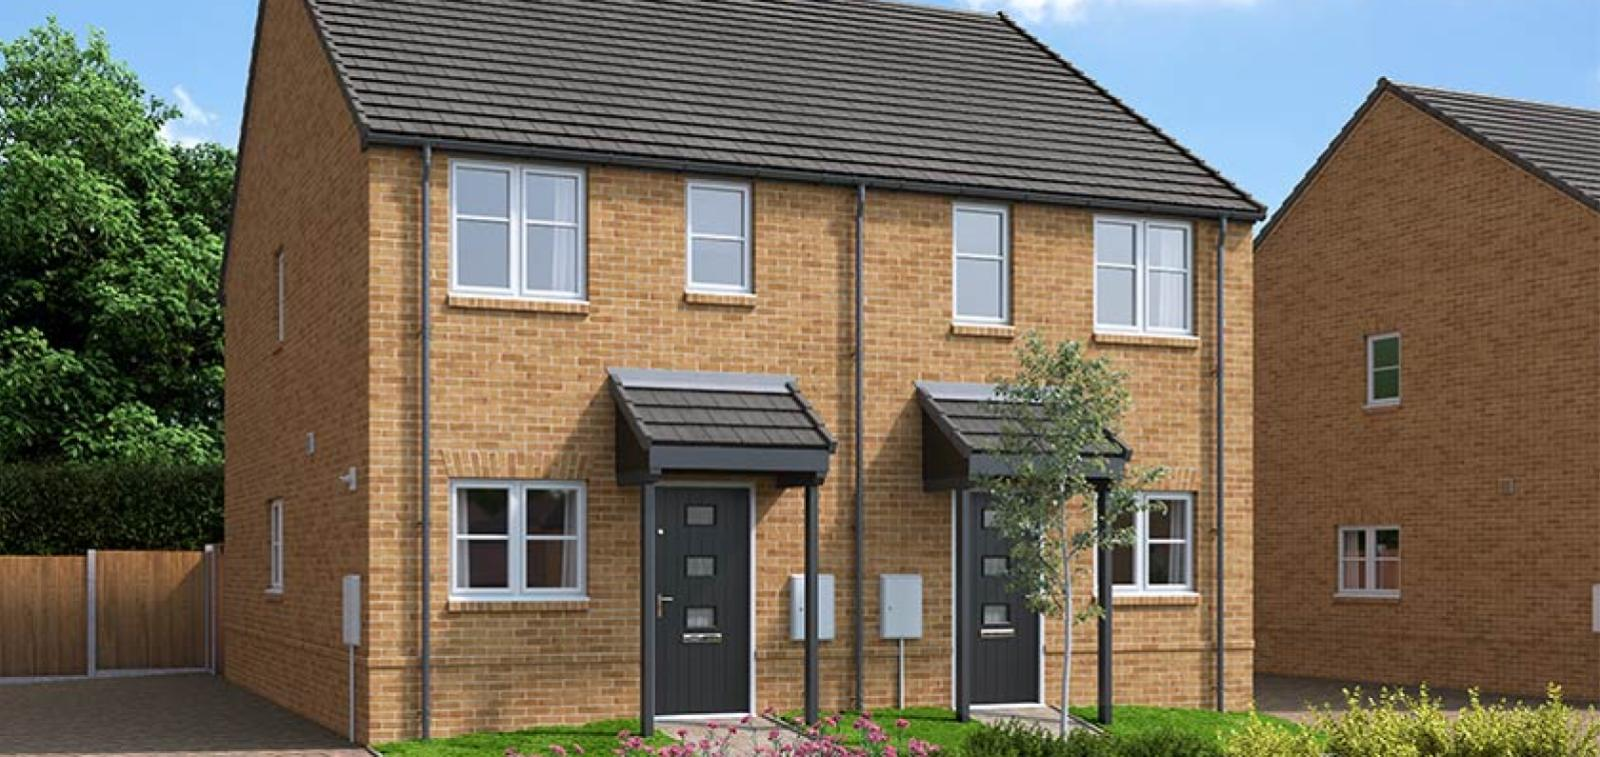 The Proposed Exterior (CGI) Of The Ellison, A 2 Bed Semi-Detached House